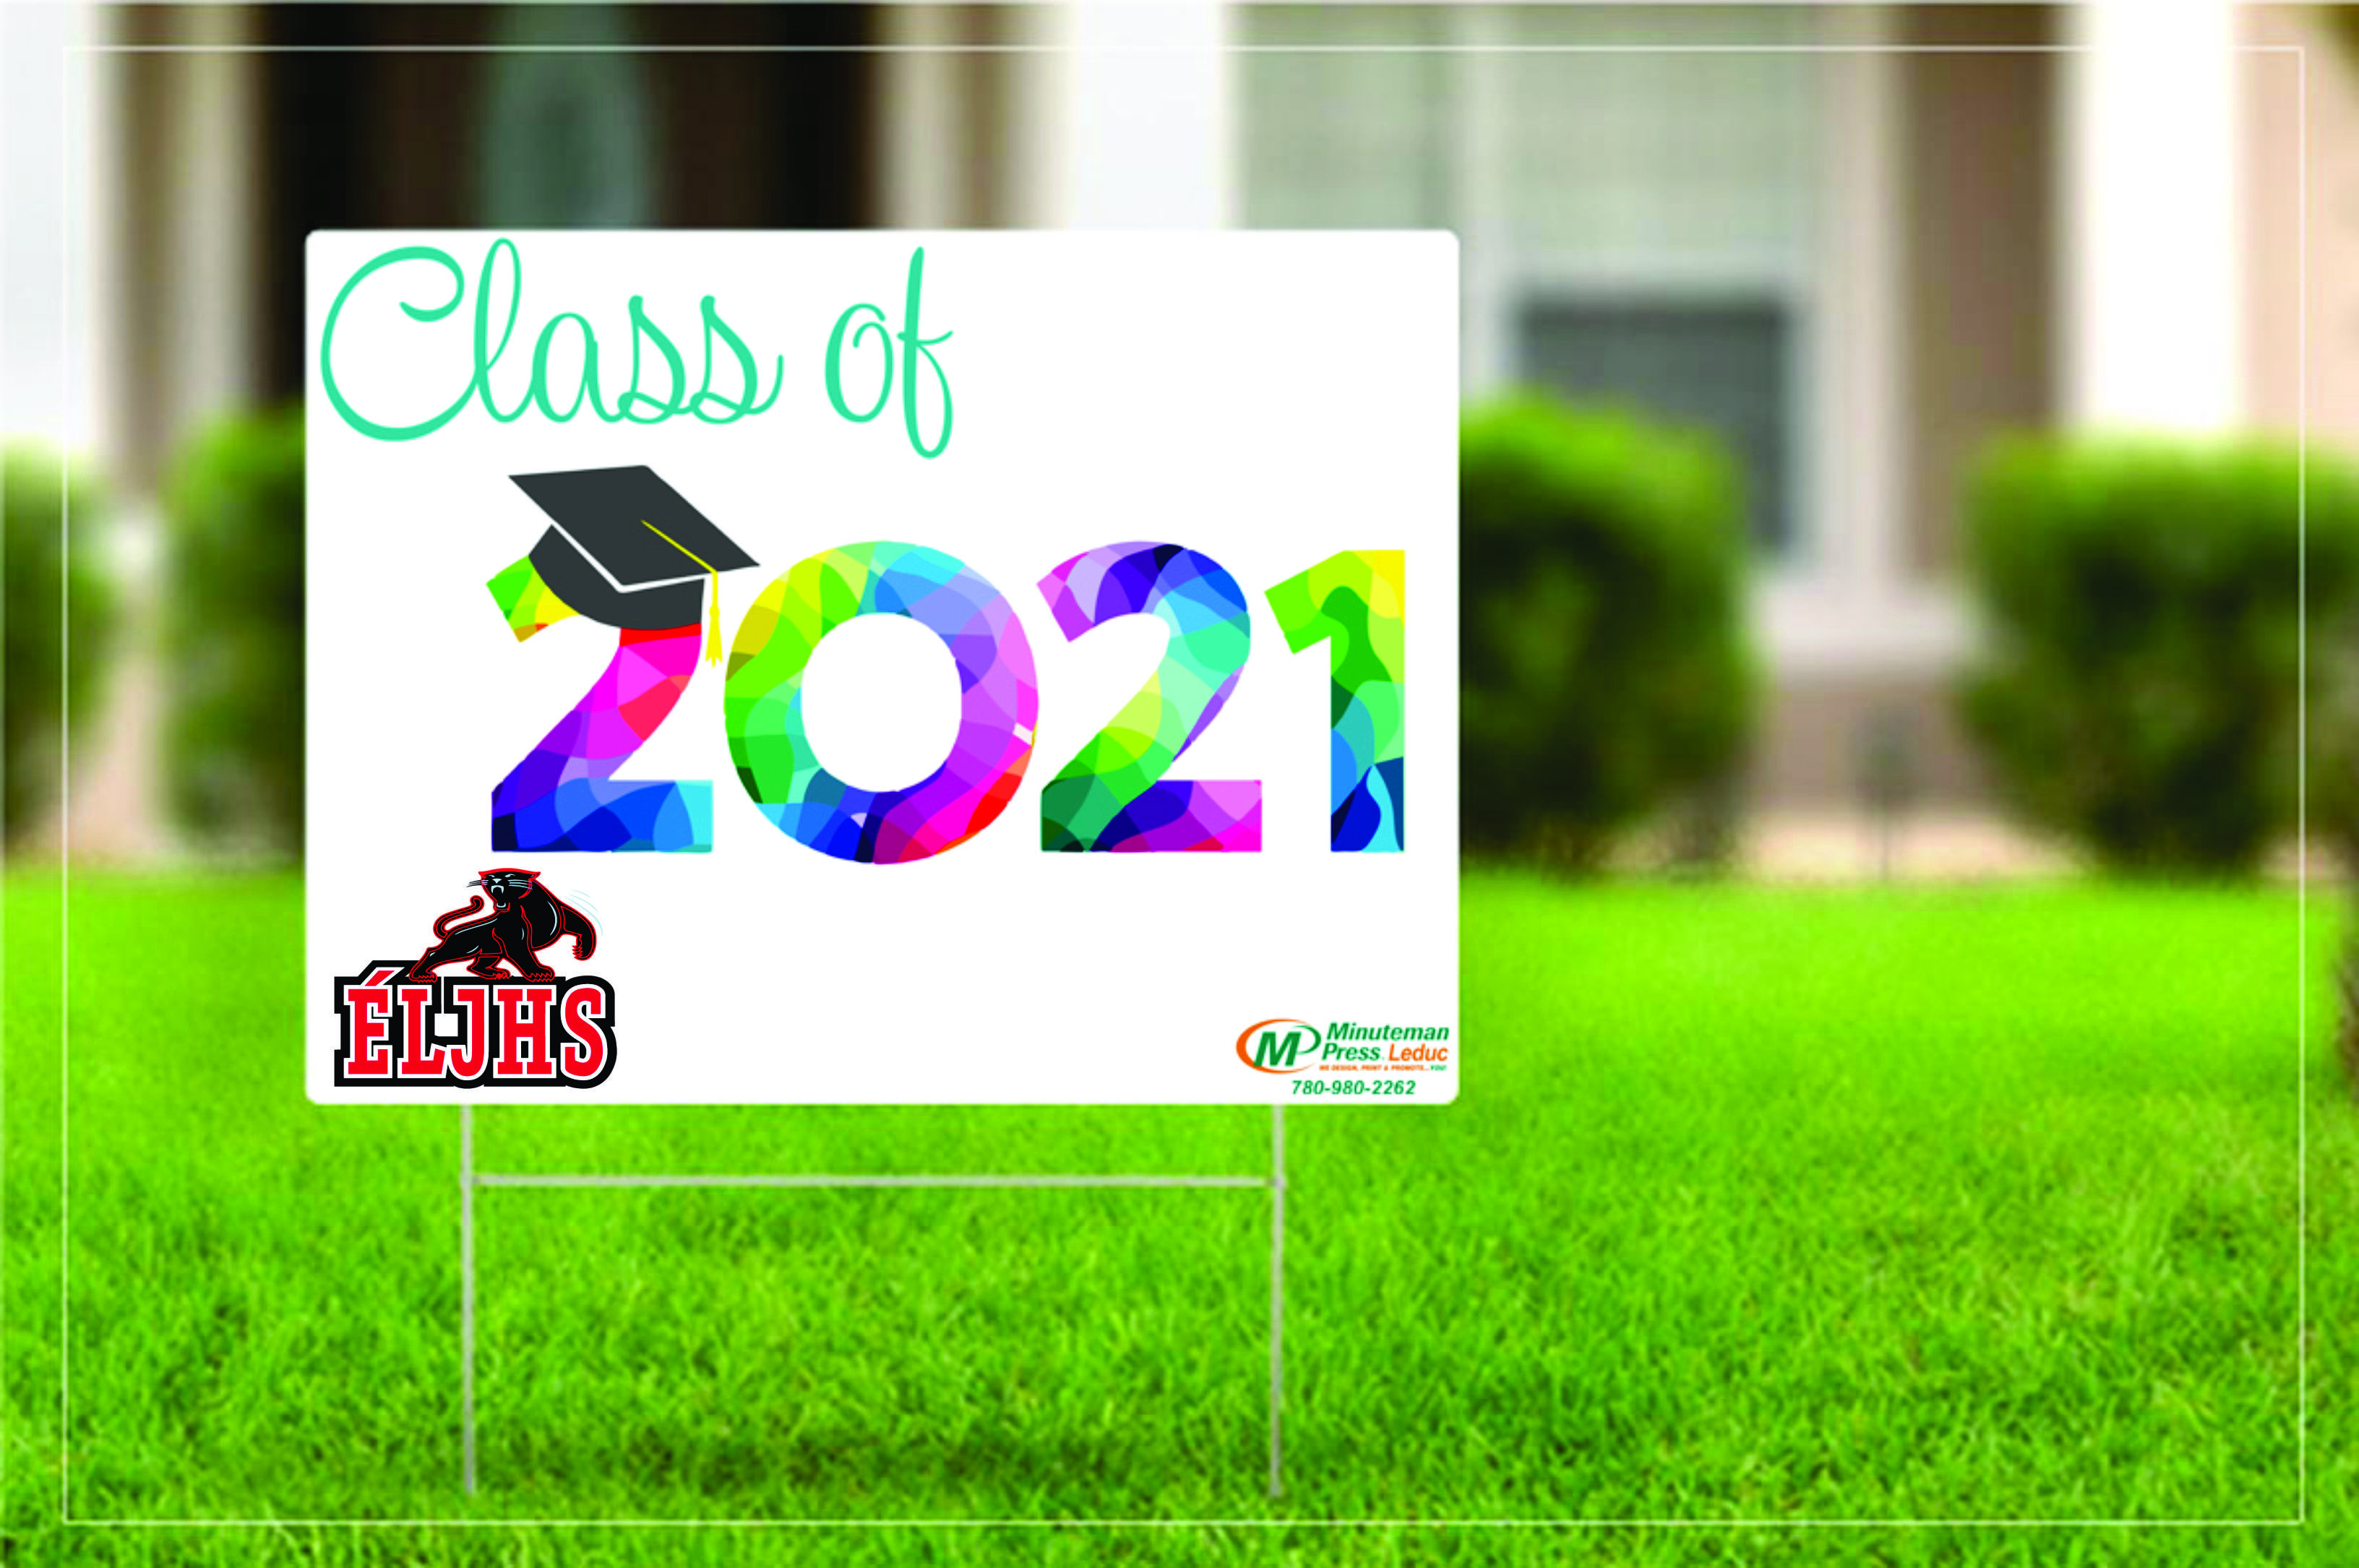 Yard sign - Class of 2021 ELJHS - Can be personalized